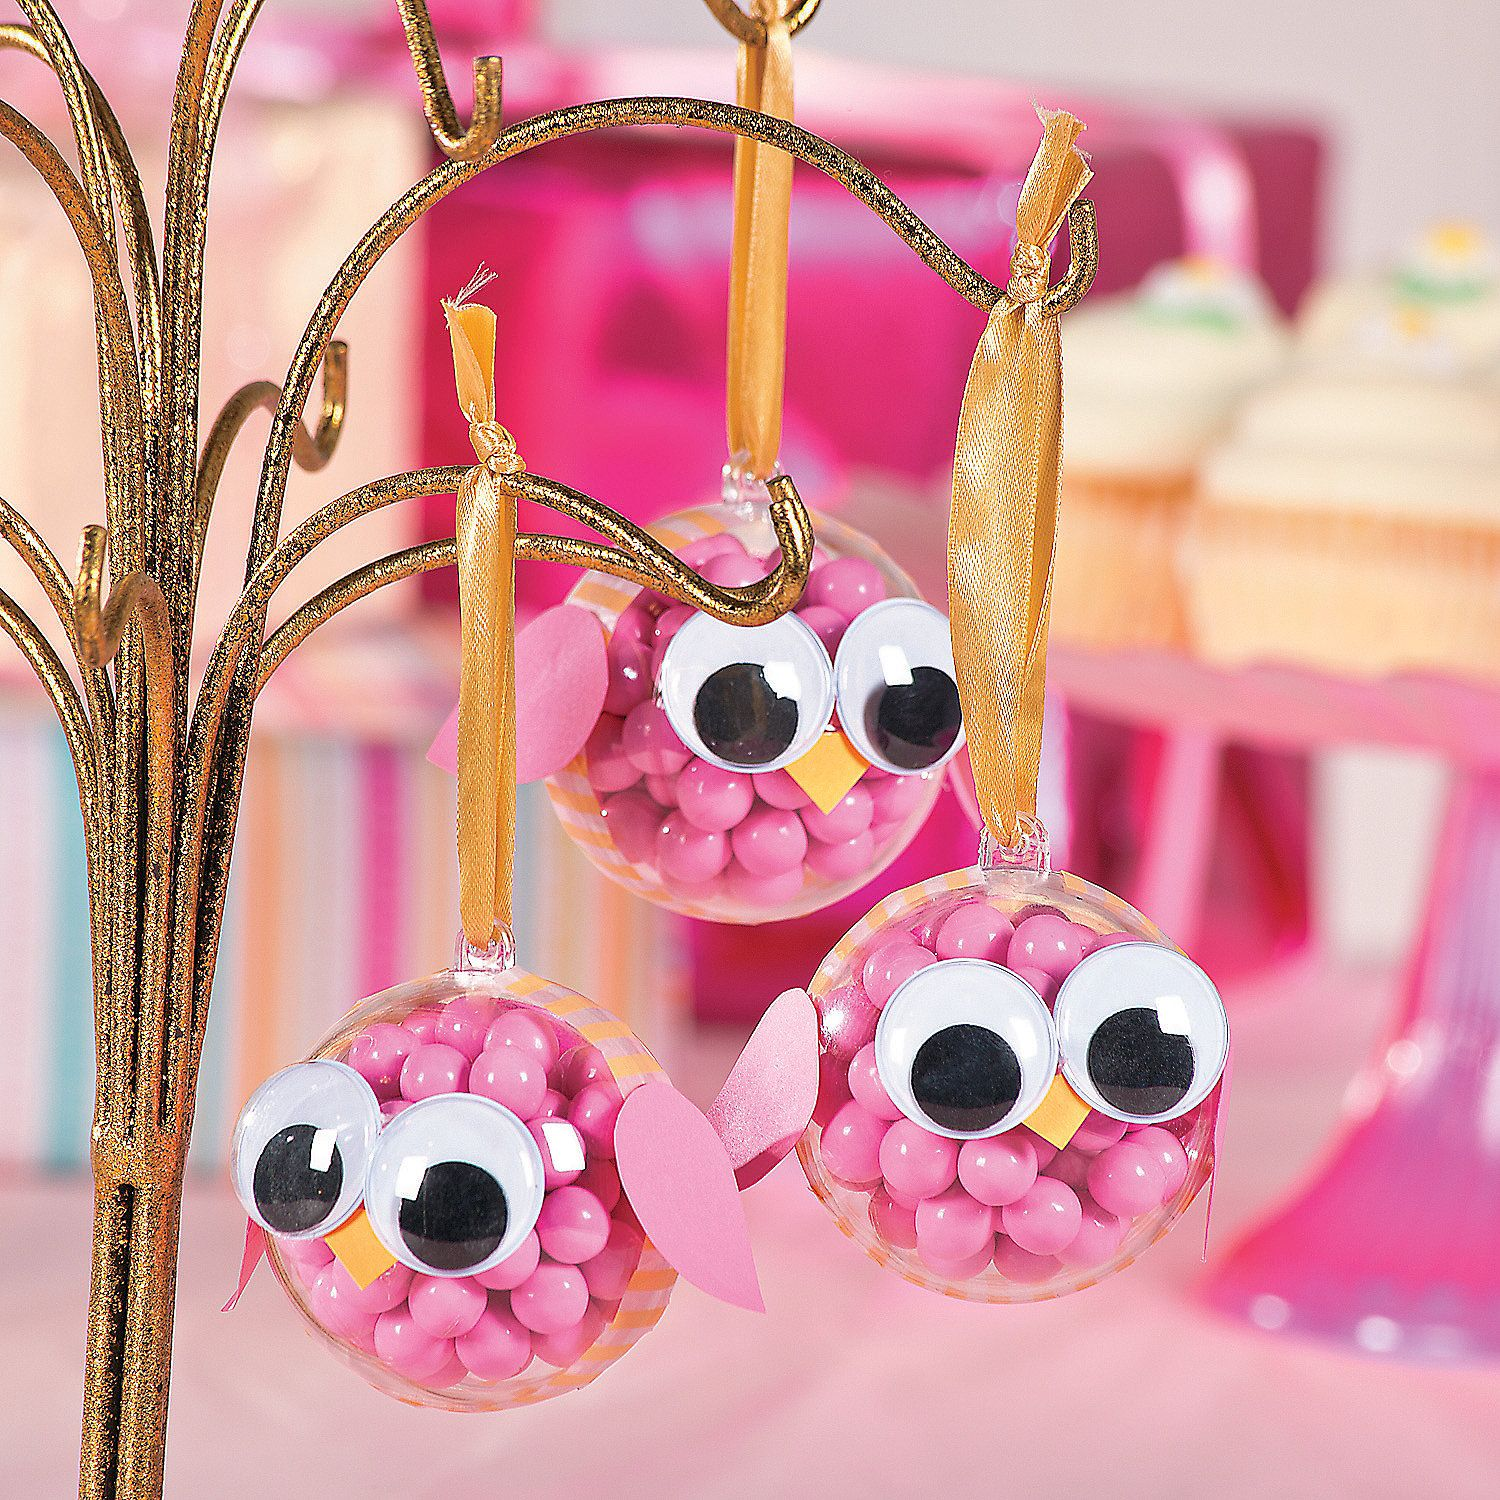 Owl Baby Shower Supplies: Owl Baby Shower Favors Idea